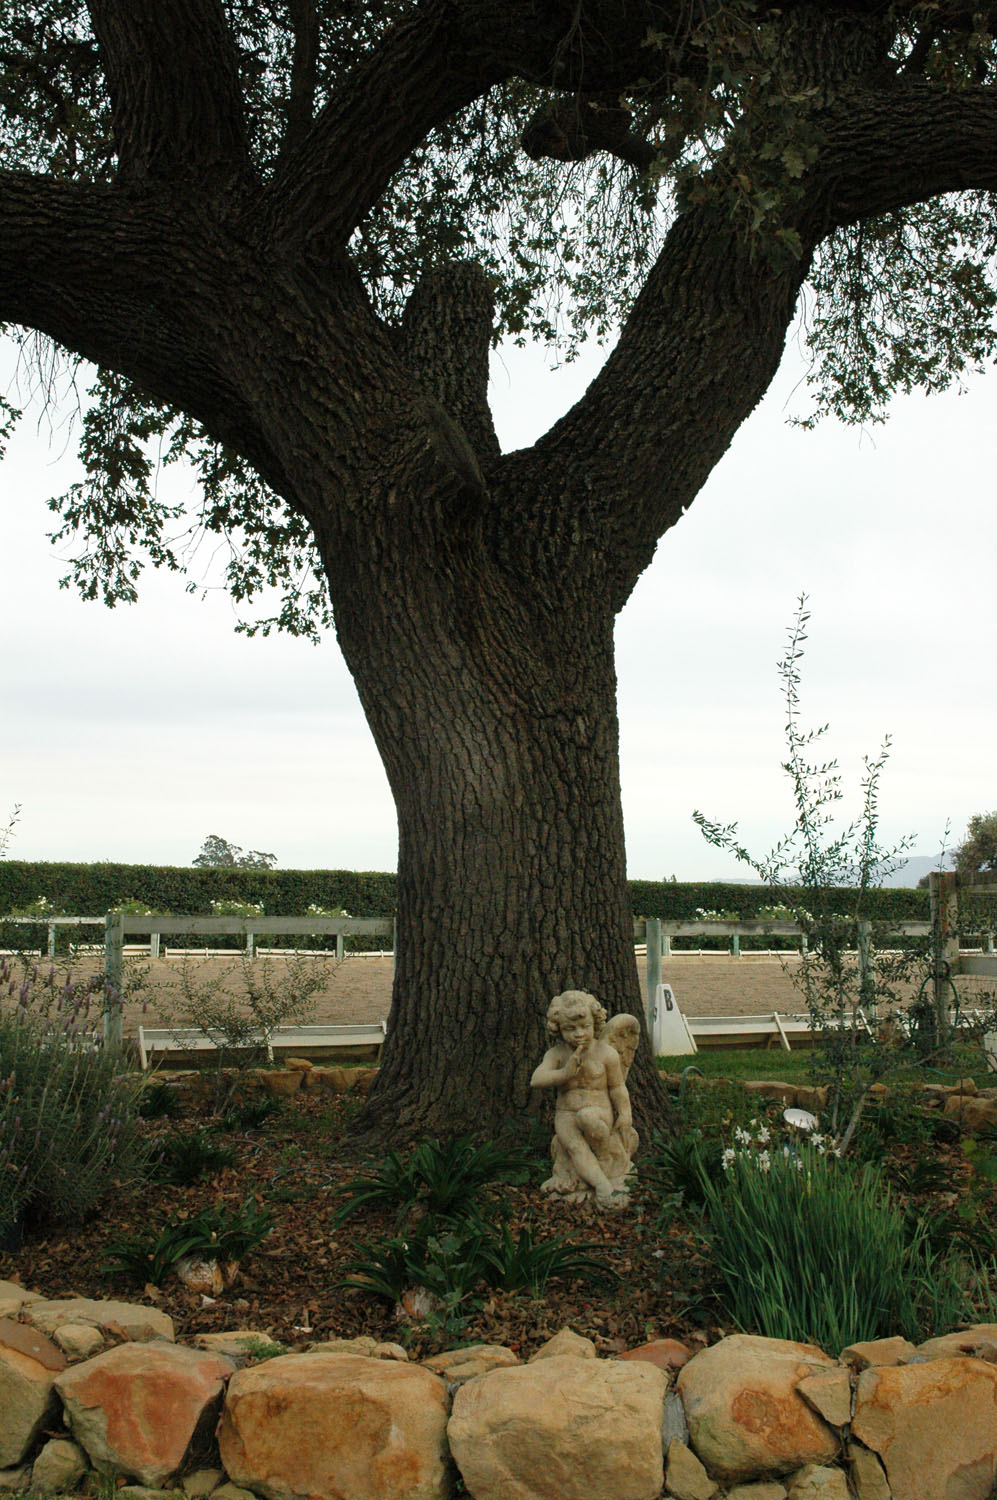 Angel-under-tree.jpg